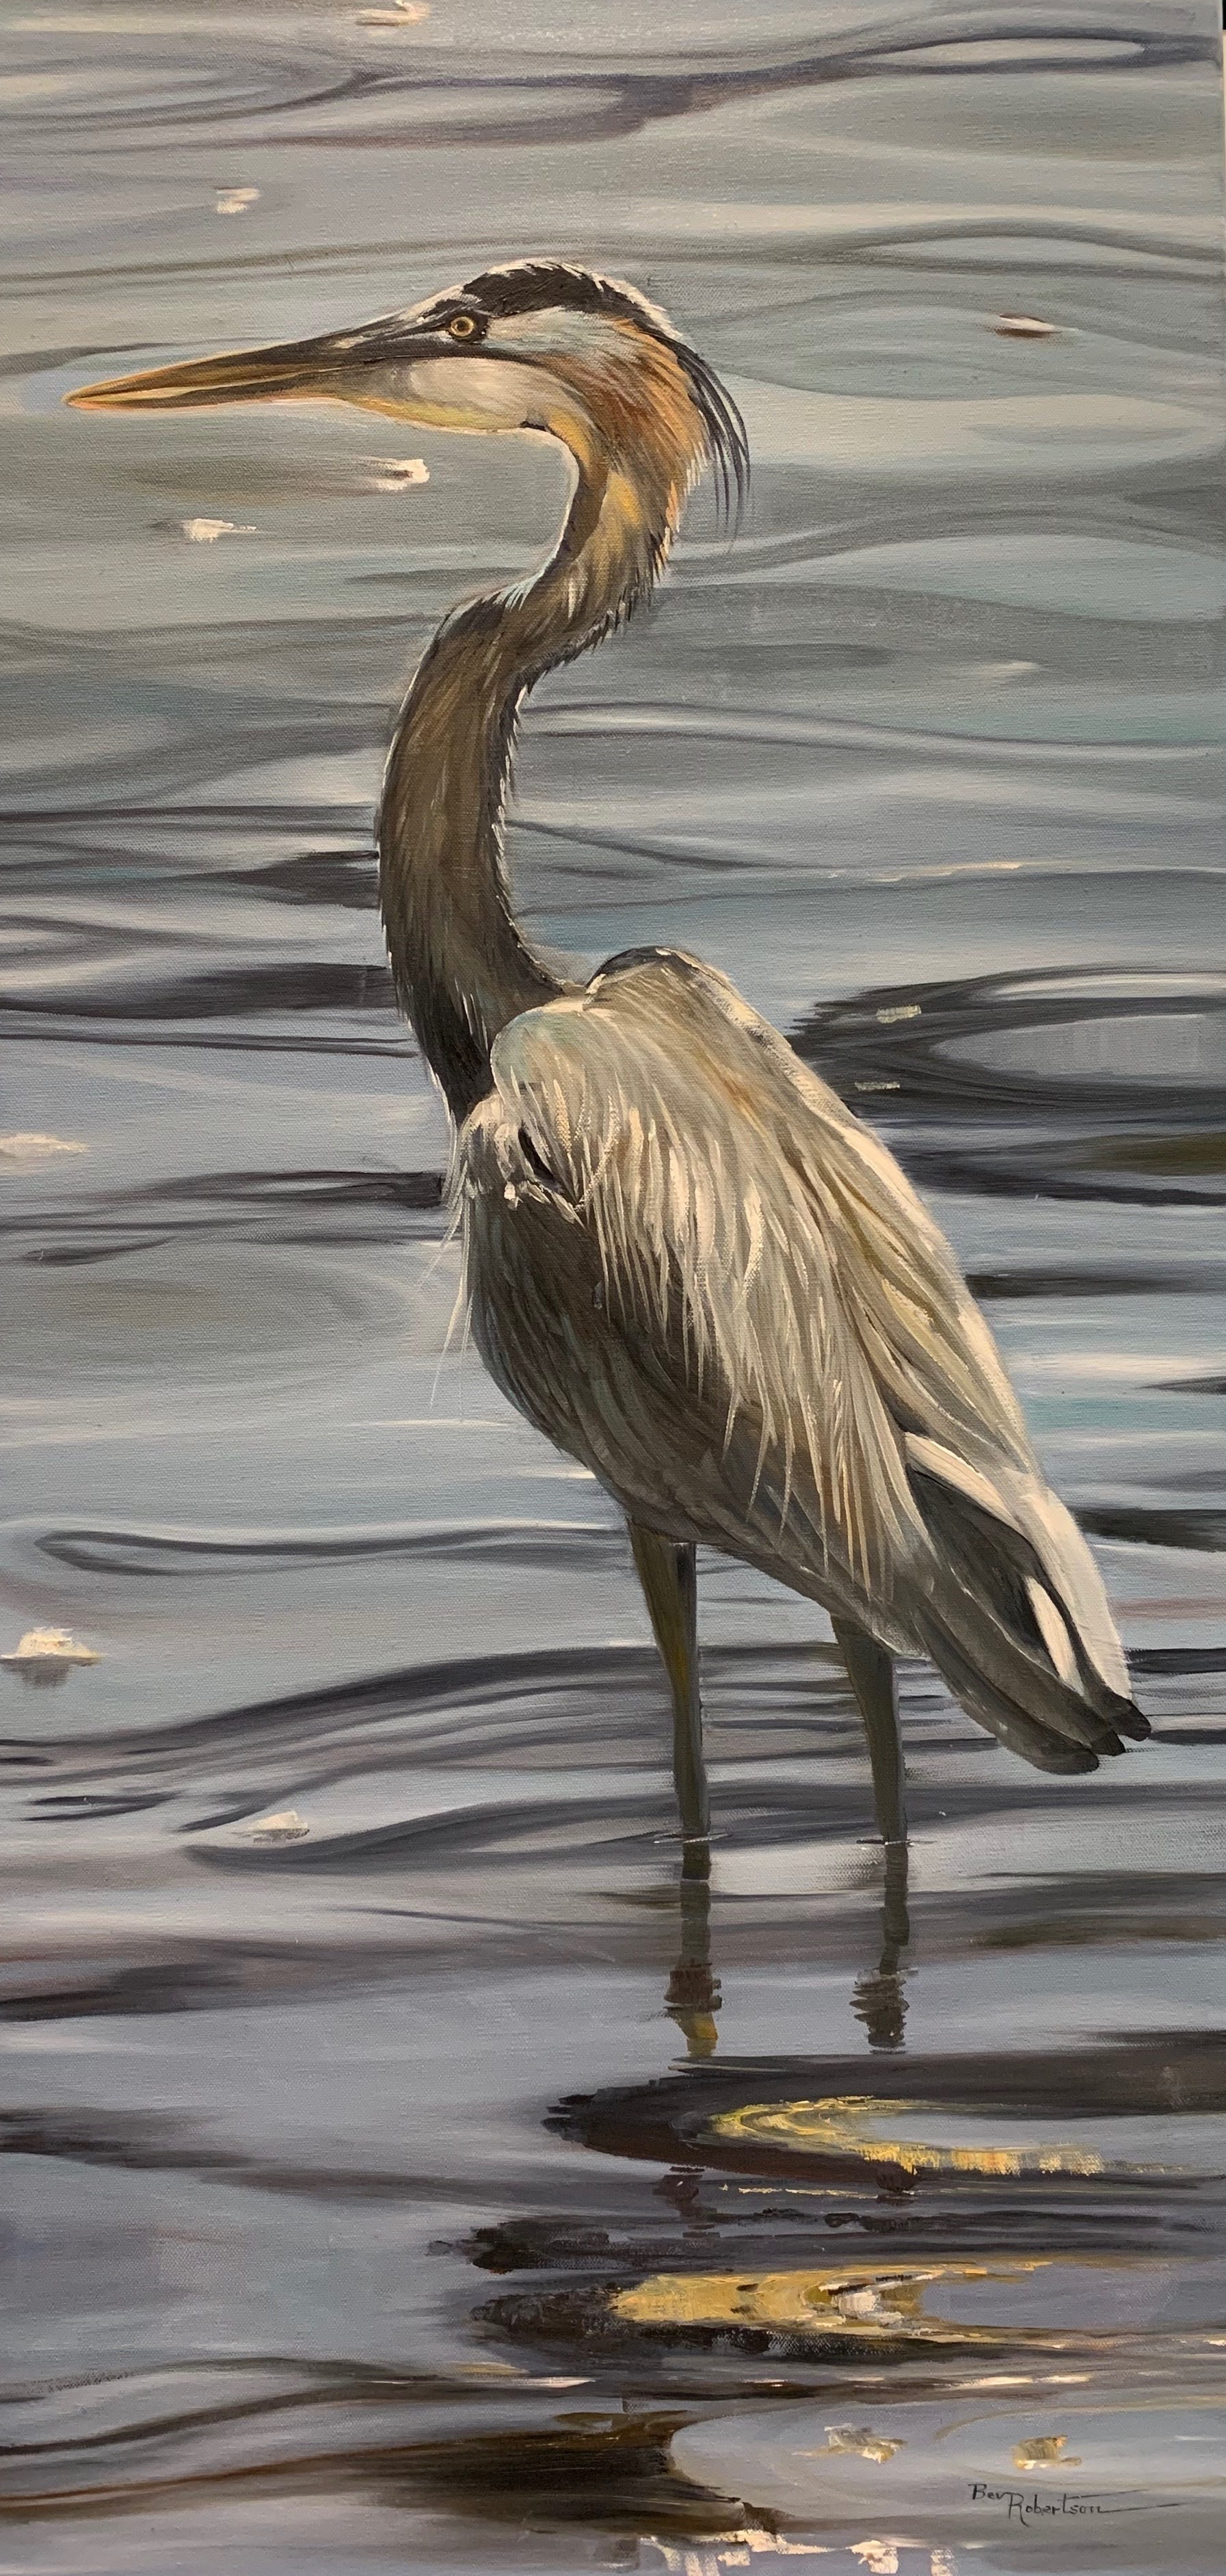 Bev Robertson - Patiently Wading